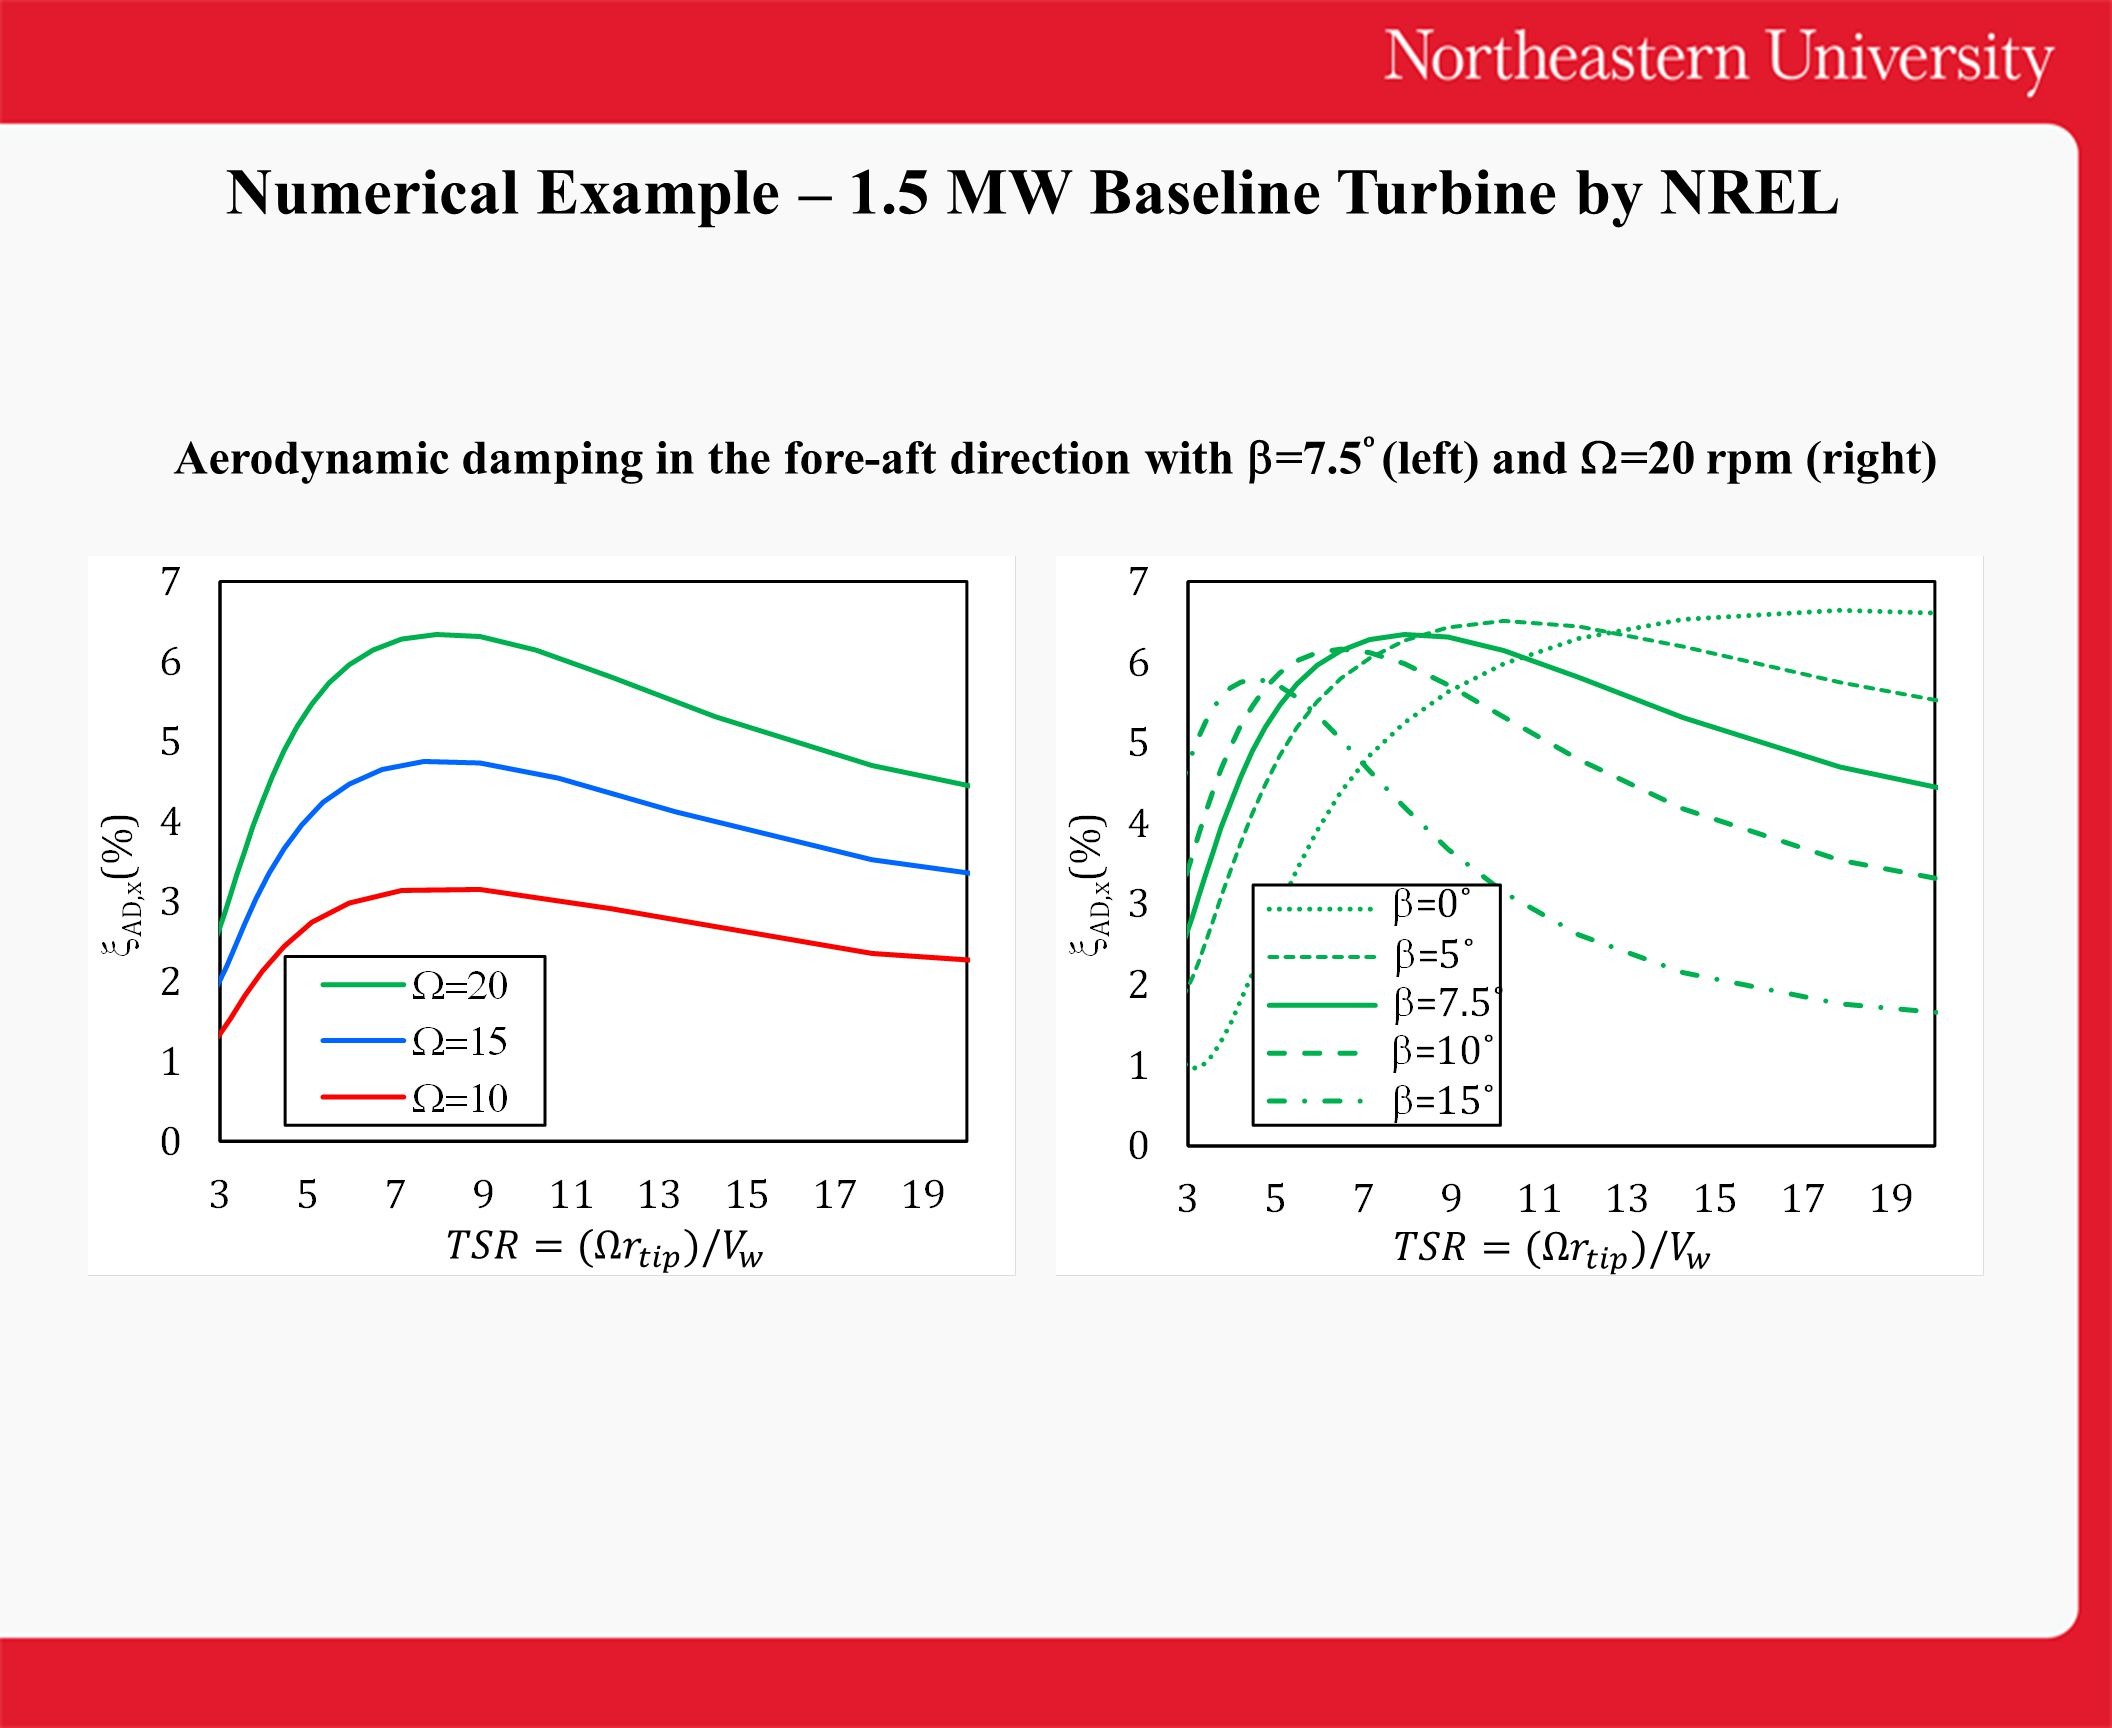 Aerodynamic damping in the fore-aft direction with  =7.5 (left) and  =20 rpm (right) Numerical Example – 1.5 MW Baseline Turbine by NREL